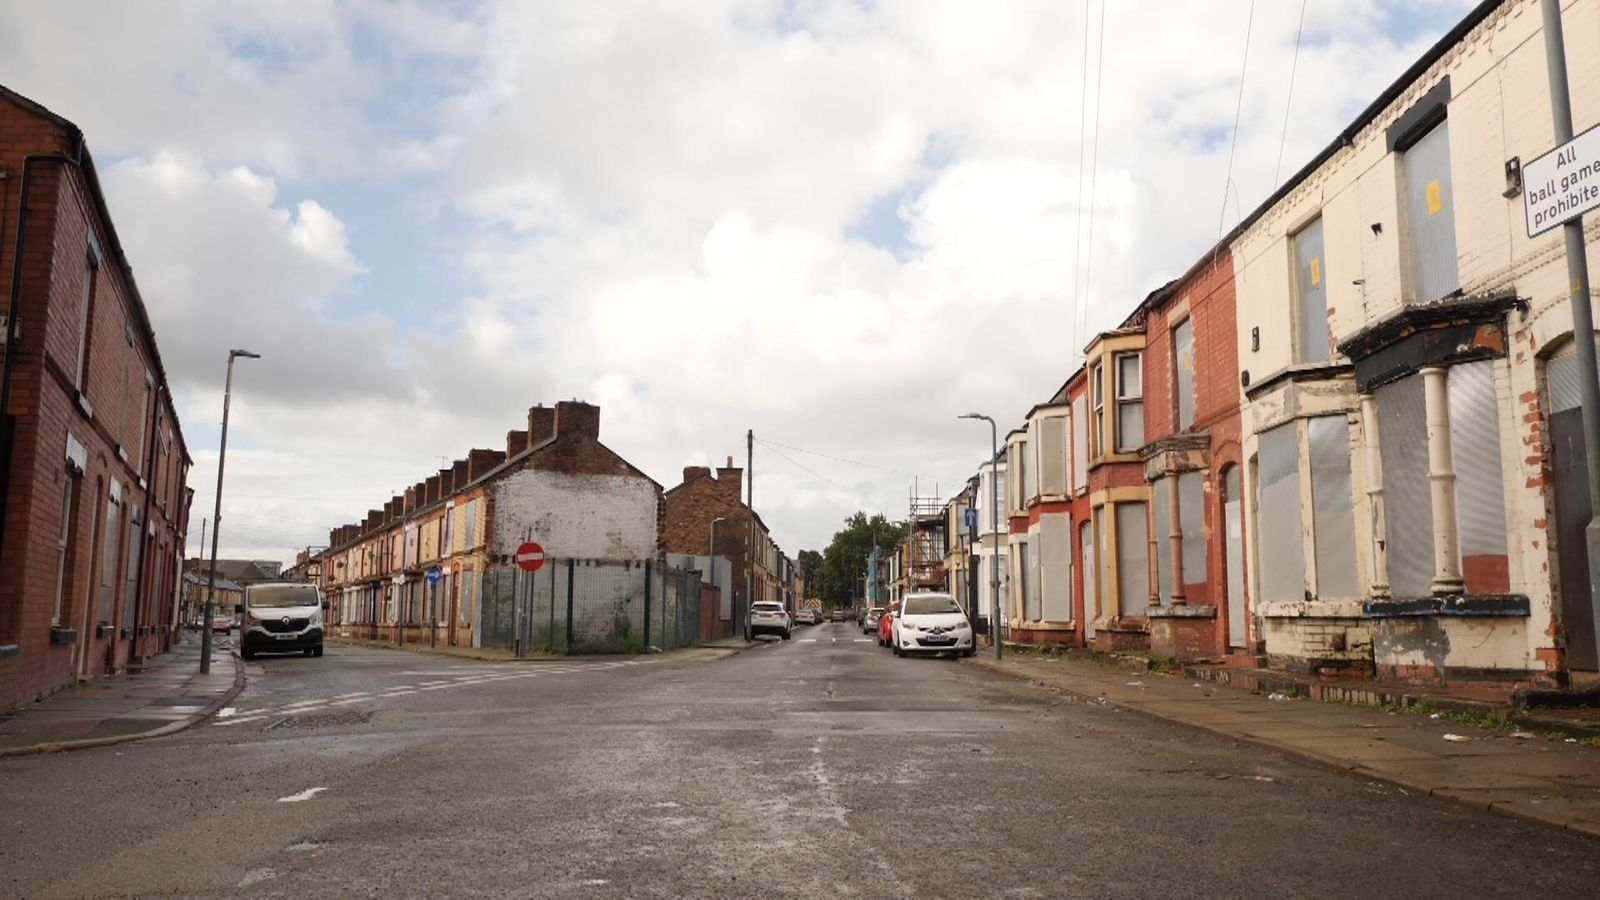 Line 18: UK's housing crisis won't be solved by building more homes